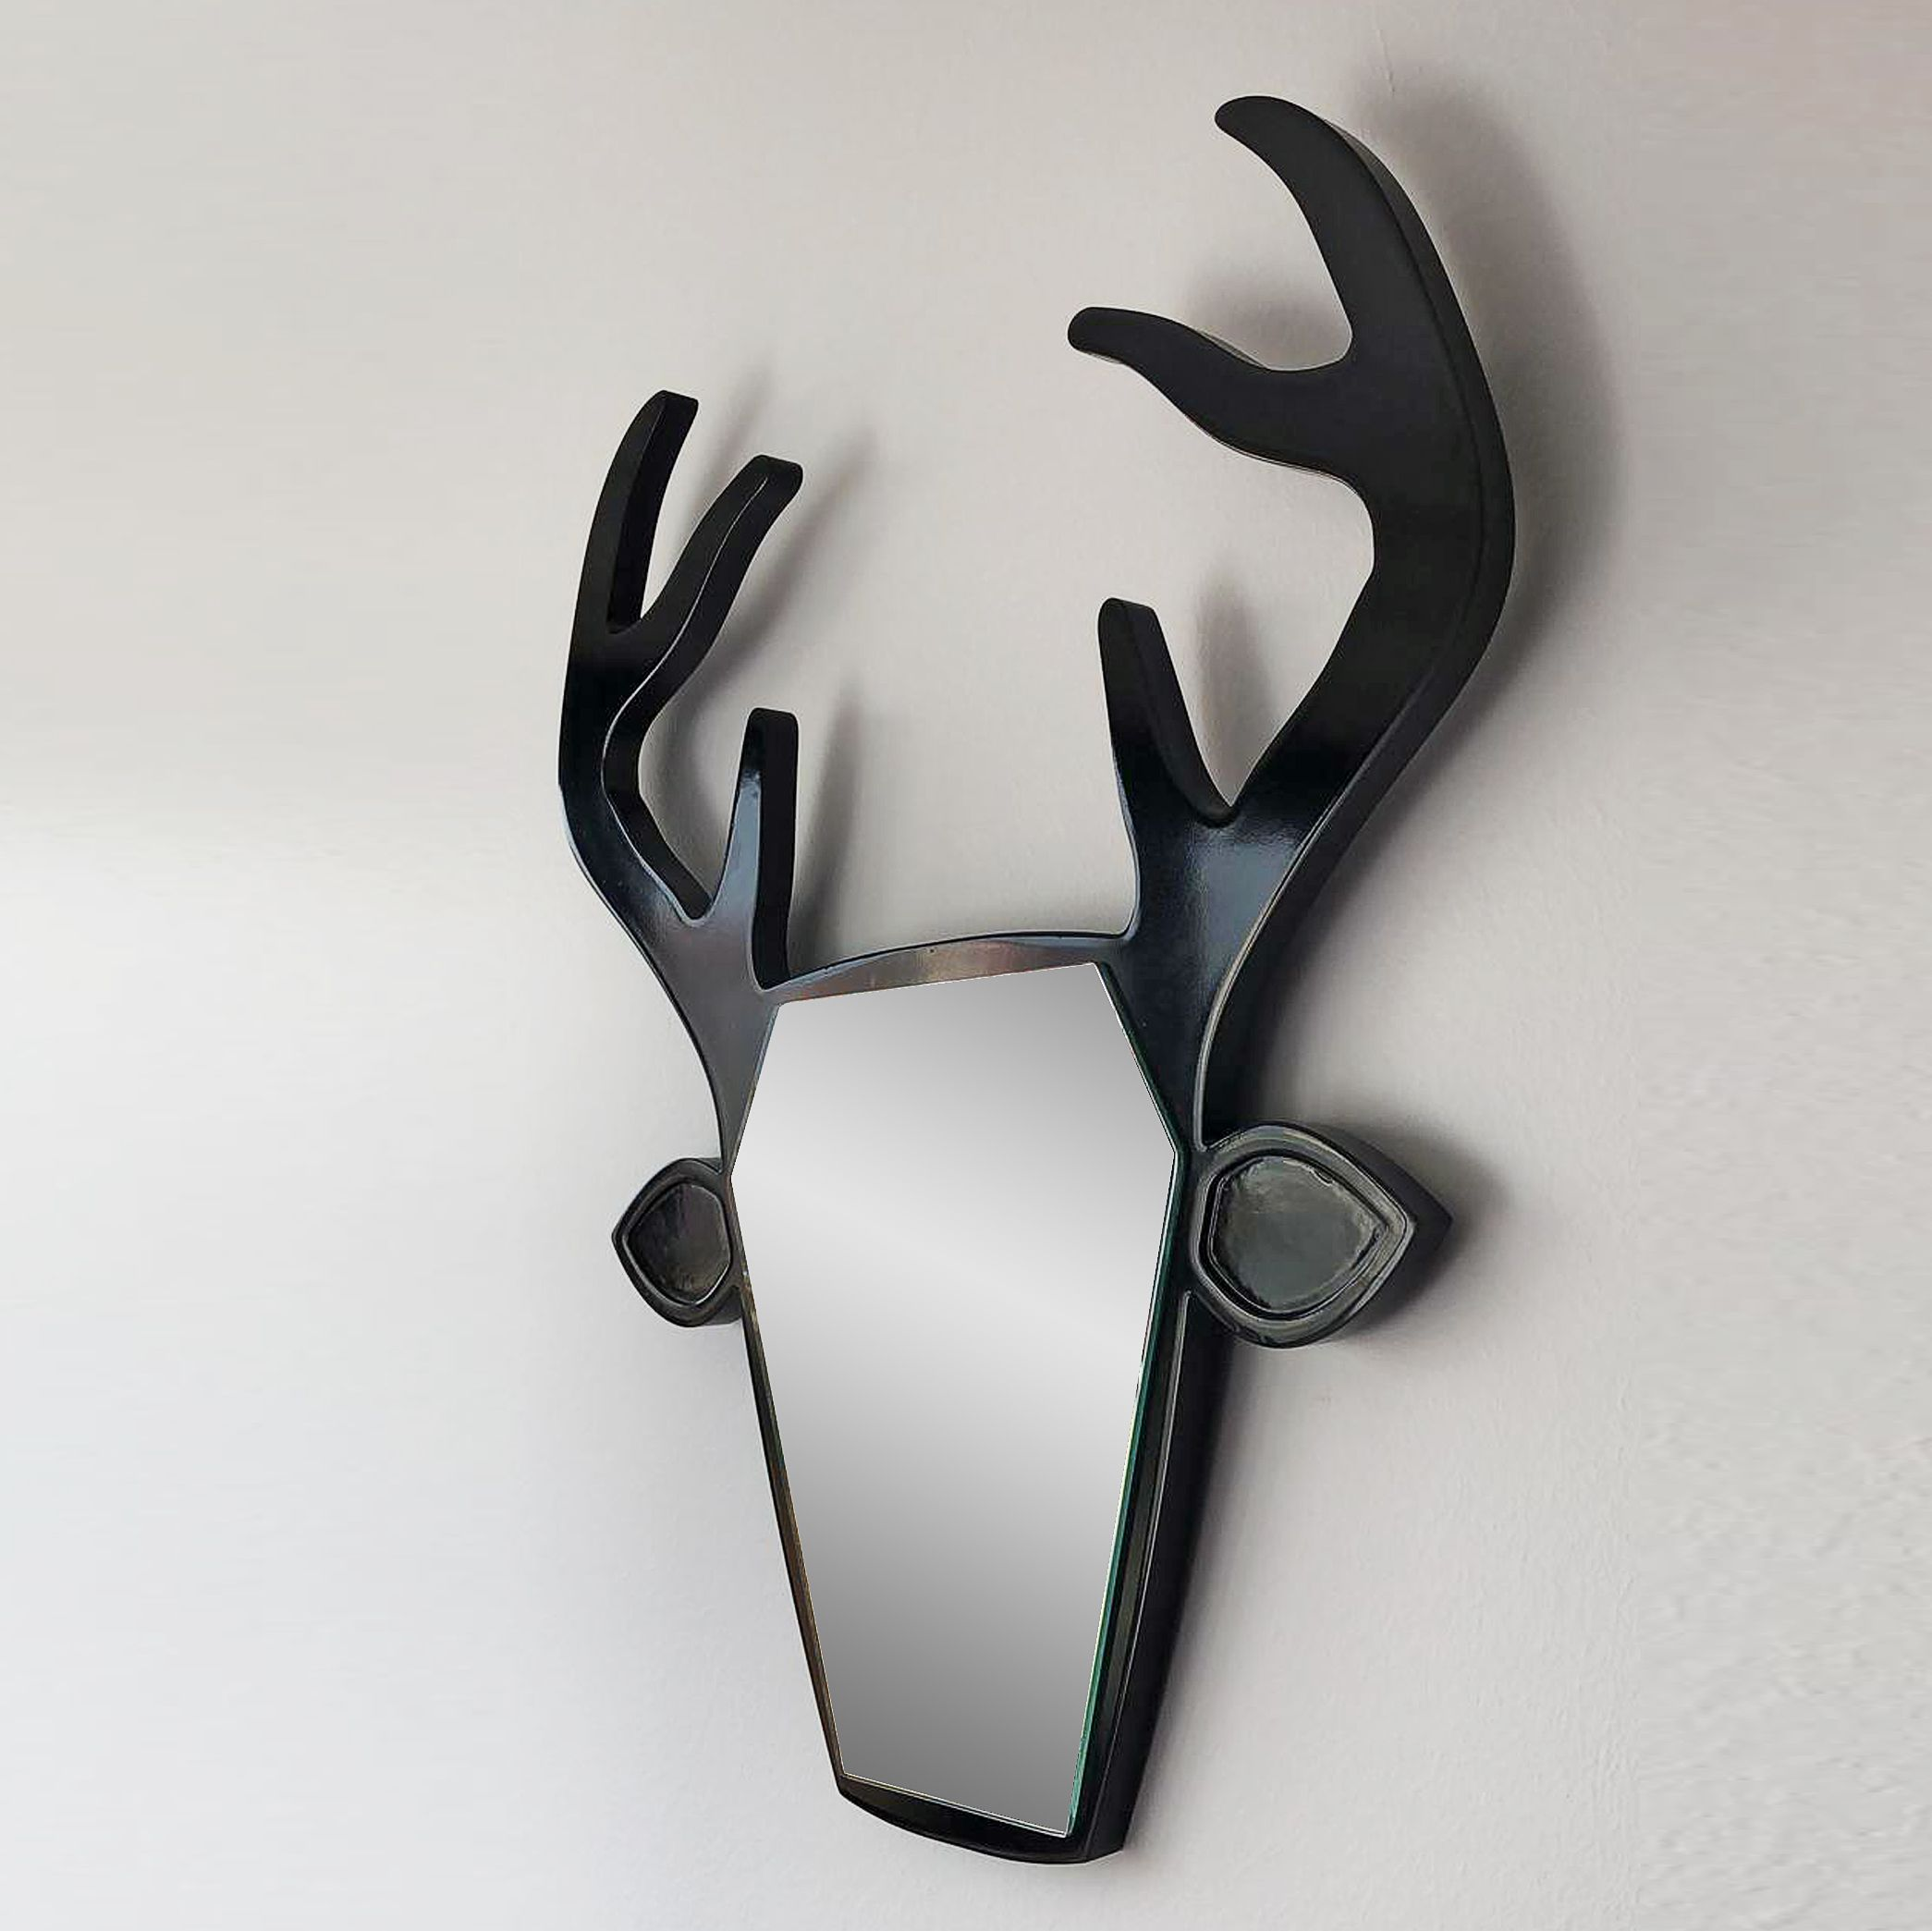 Wapiti Deer Head Shaped Mirror With Antlers Wall Etsy In 2020 Head Shapes Unique Home Accessories Deer Head